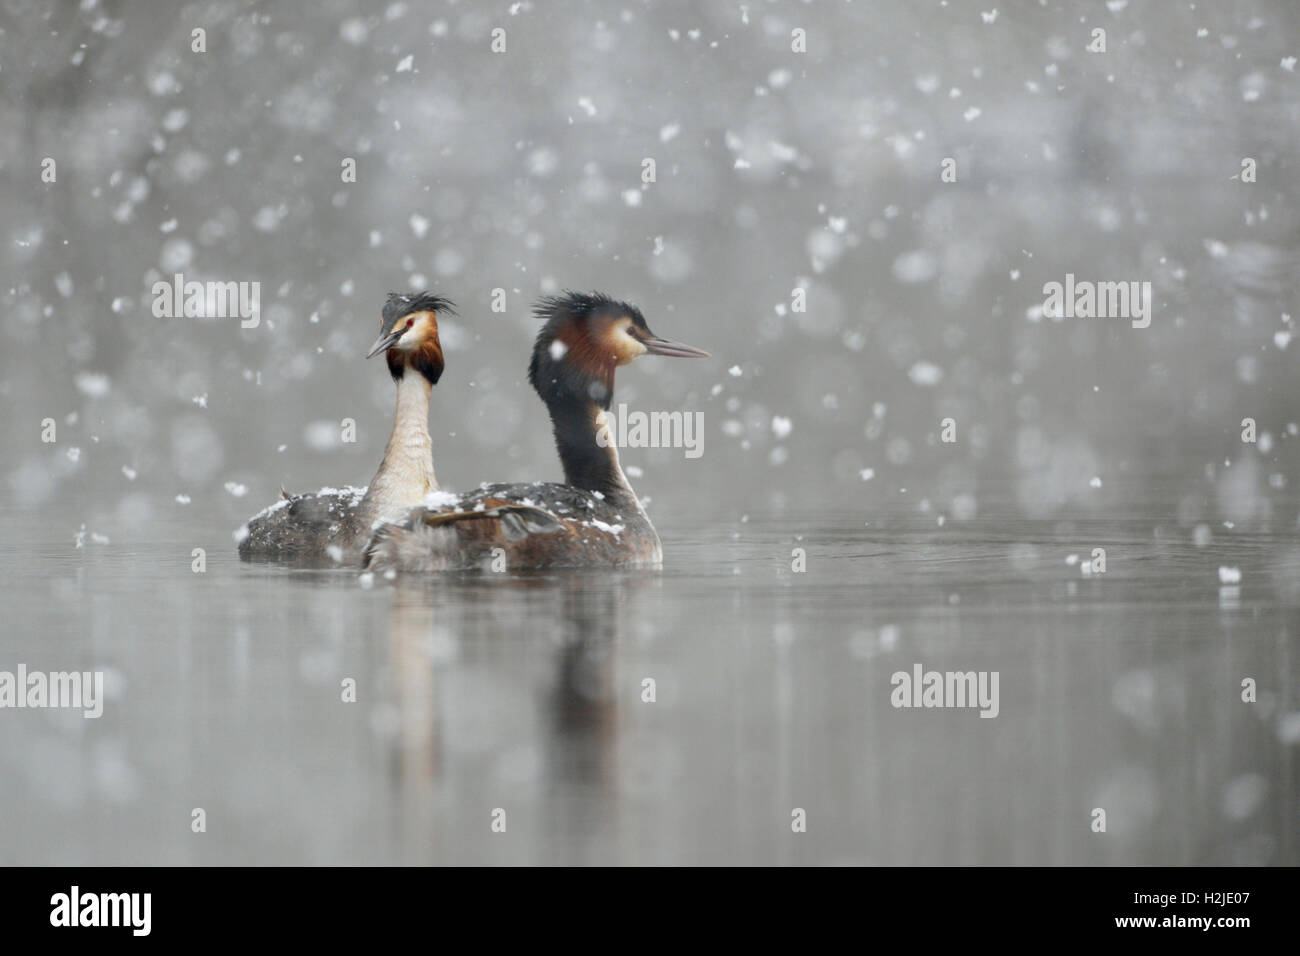 Great Crested Grebes ( Podiceps cristatus ), swimming pair, courting, falling snow, late onset of winter, snowfall, - Stock Image